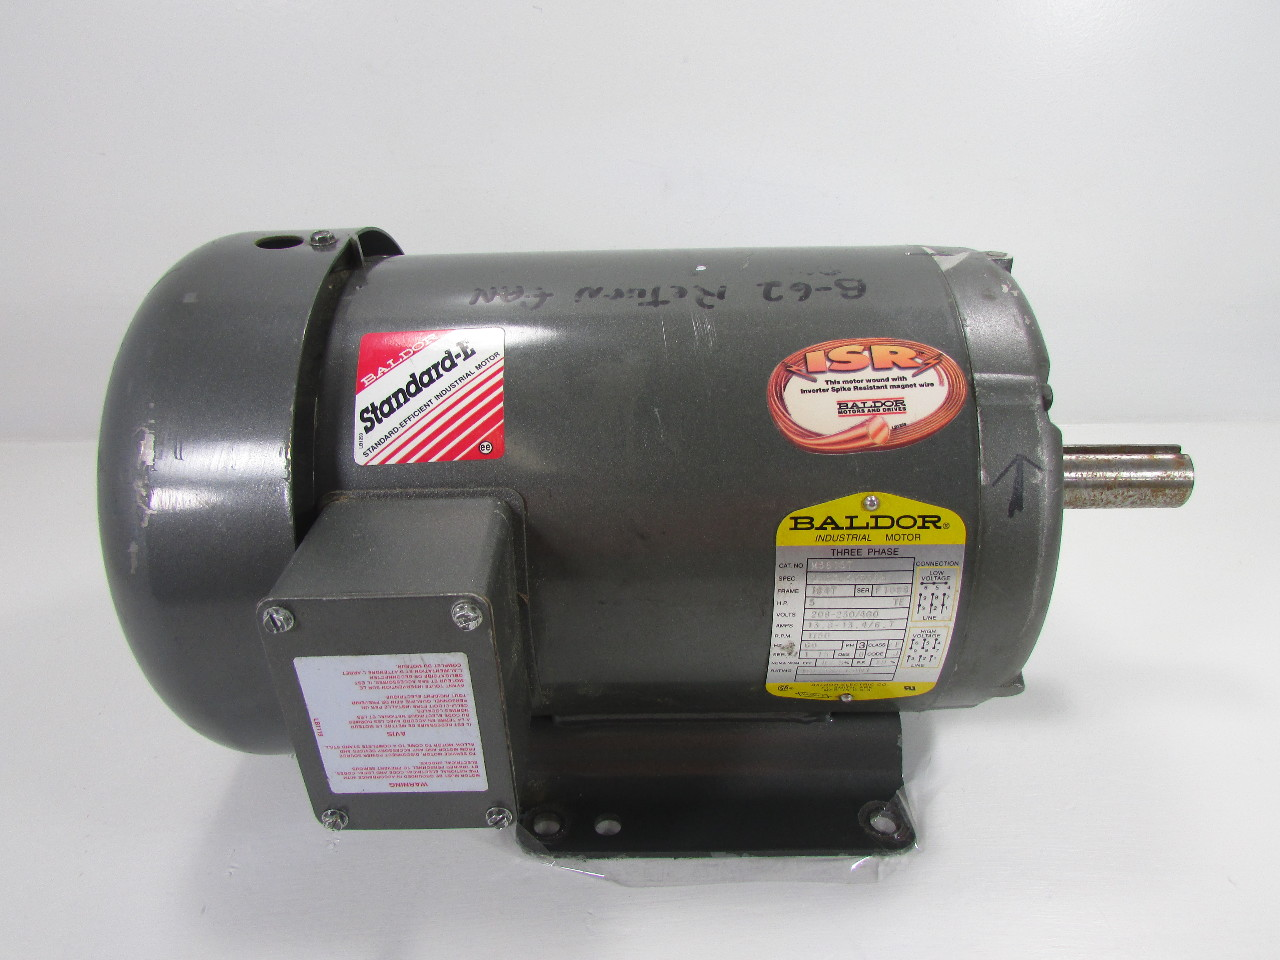 Baldor M3615t 5 Hp 1750 Rpm Electric Motor 3 Phase 230: electric motor solutions